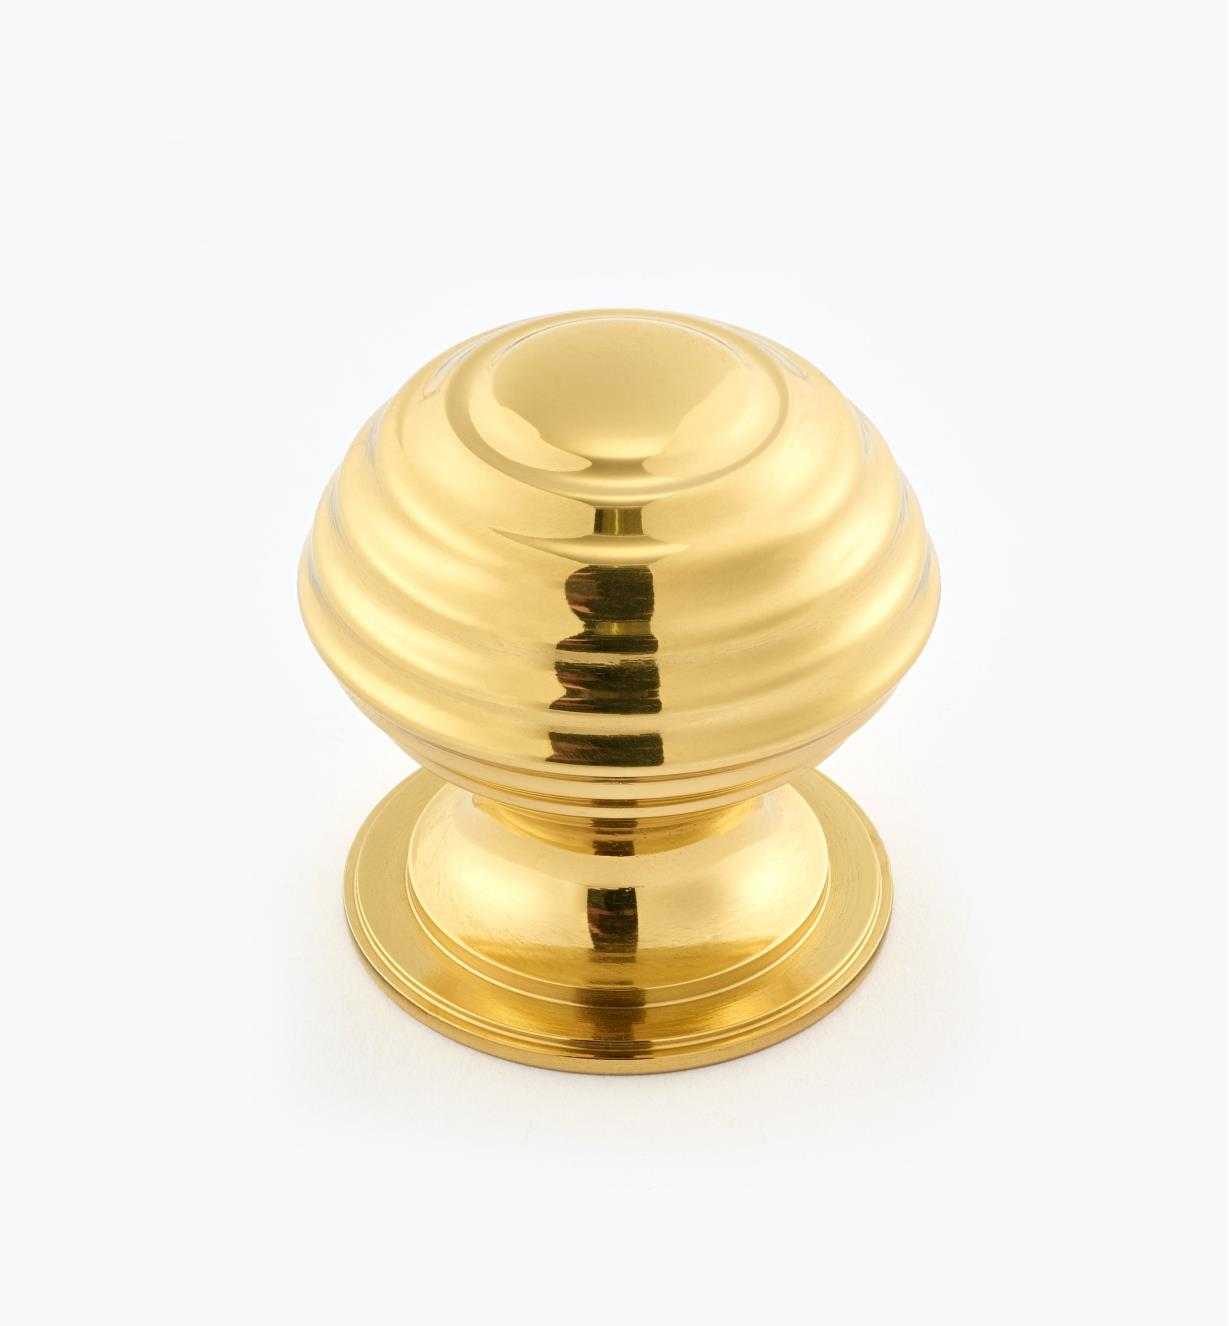 "02W3216 - Polished Brass Suite - 1 1/2"" x 1 1/2"" Turned Brass Ridged Knob"